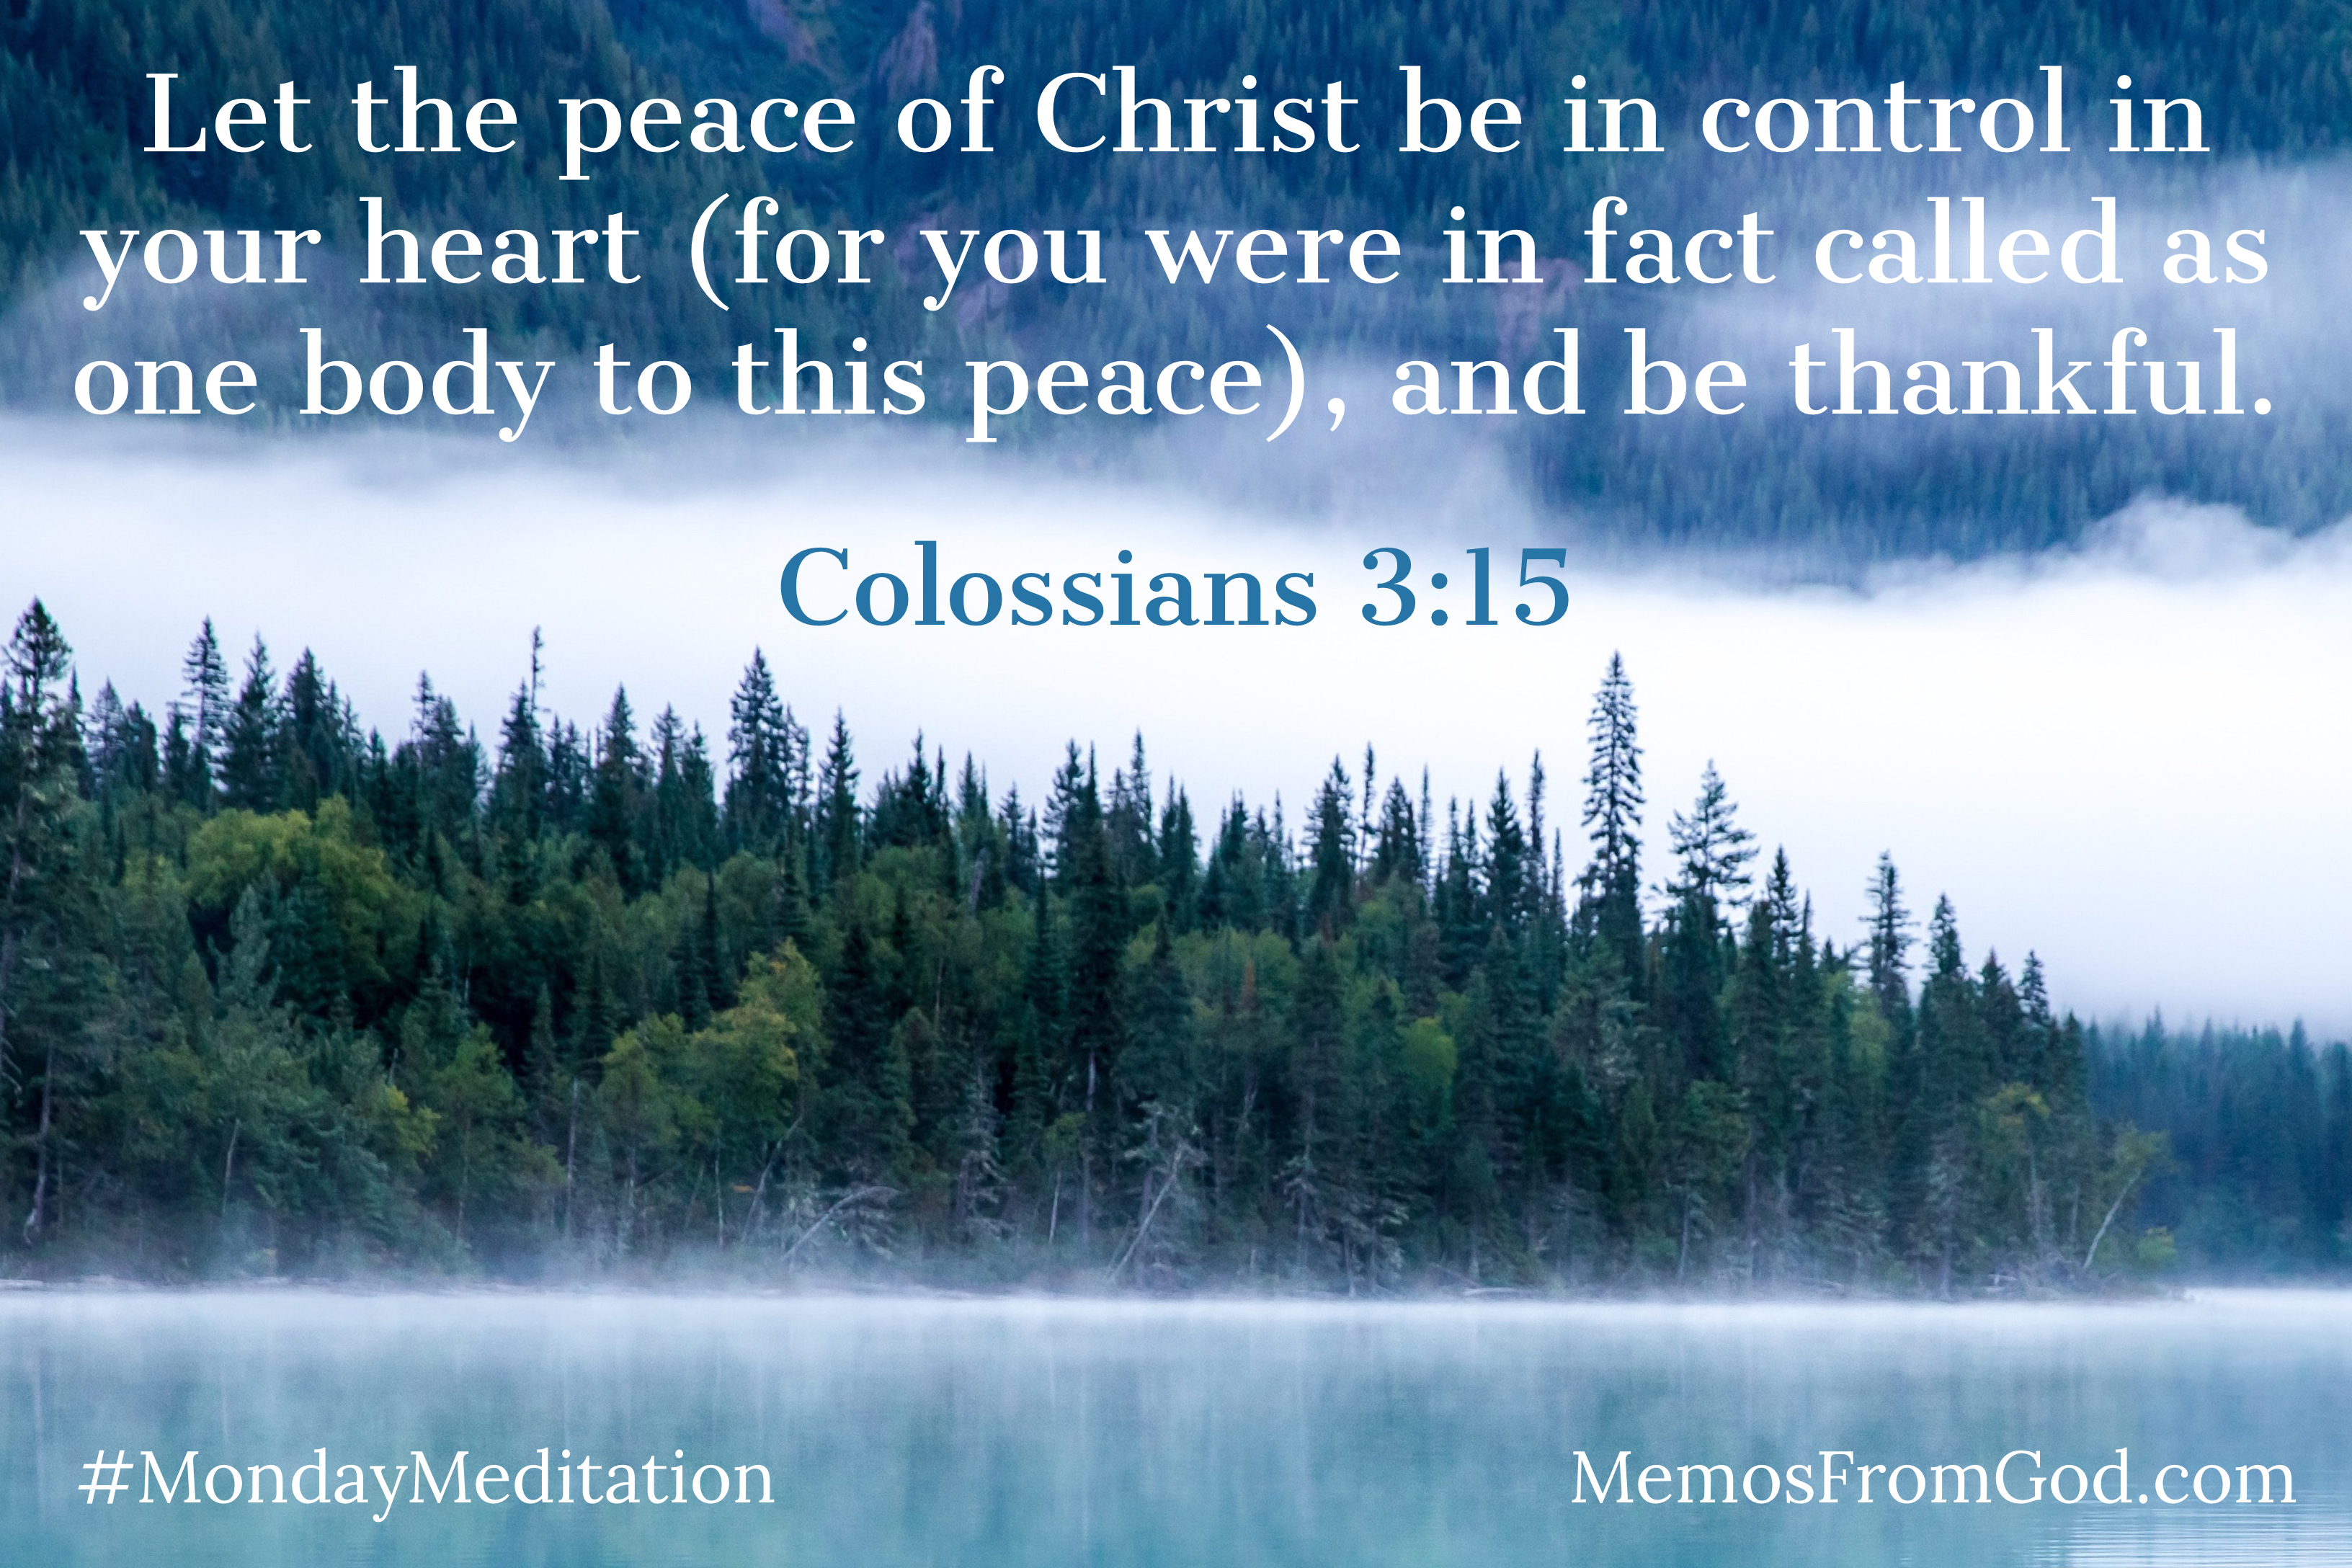 An evergreen hillside shrouded in mist reflecting in still water. Caption: Let the peace of Christ be in control in your heart (for you were in fact called as one body to this peace), and be thankful. Colossians 3:15